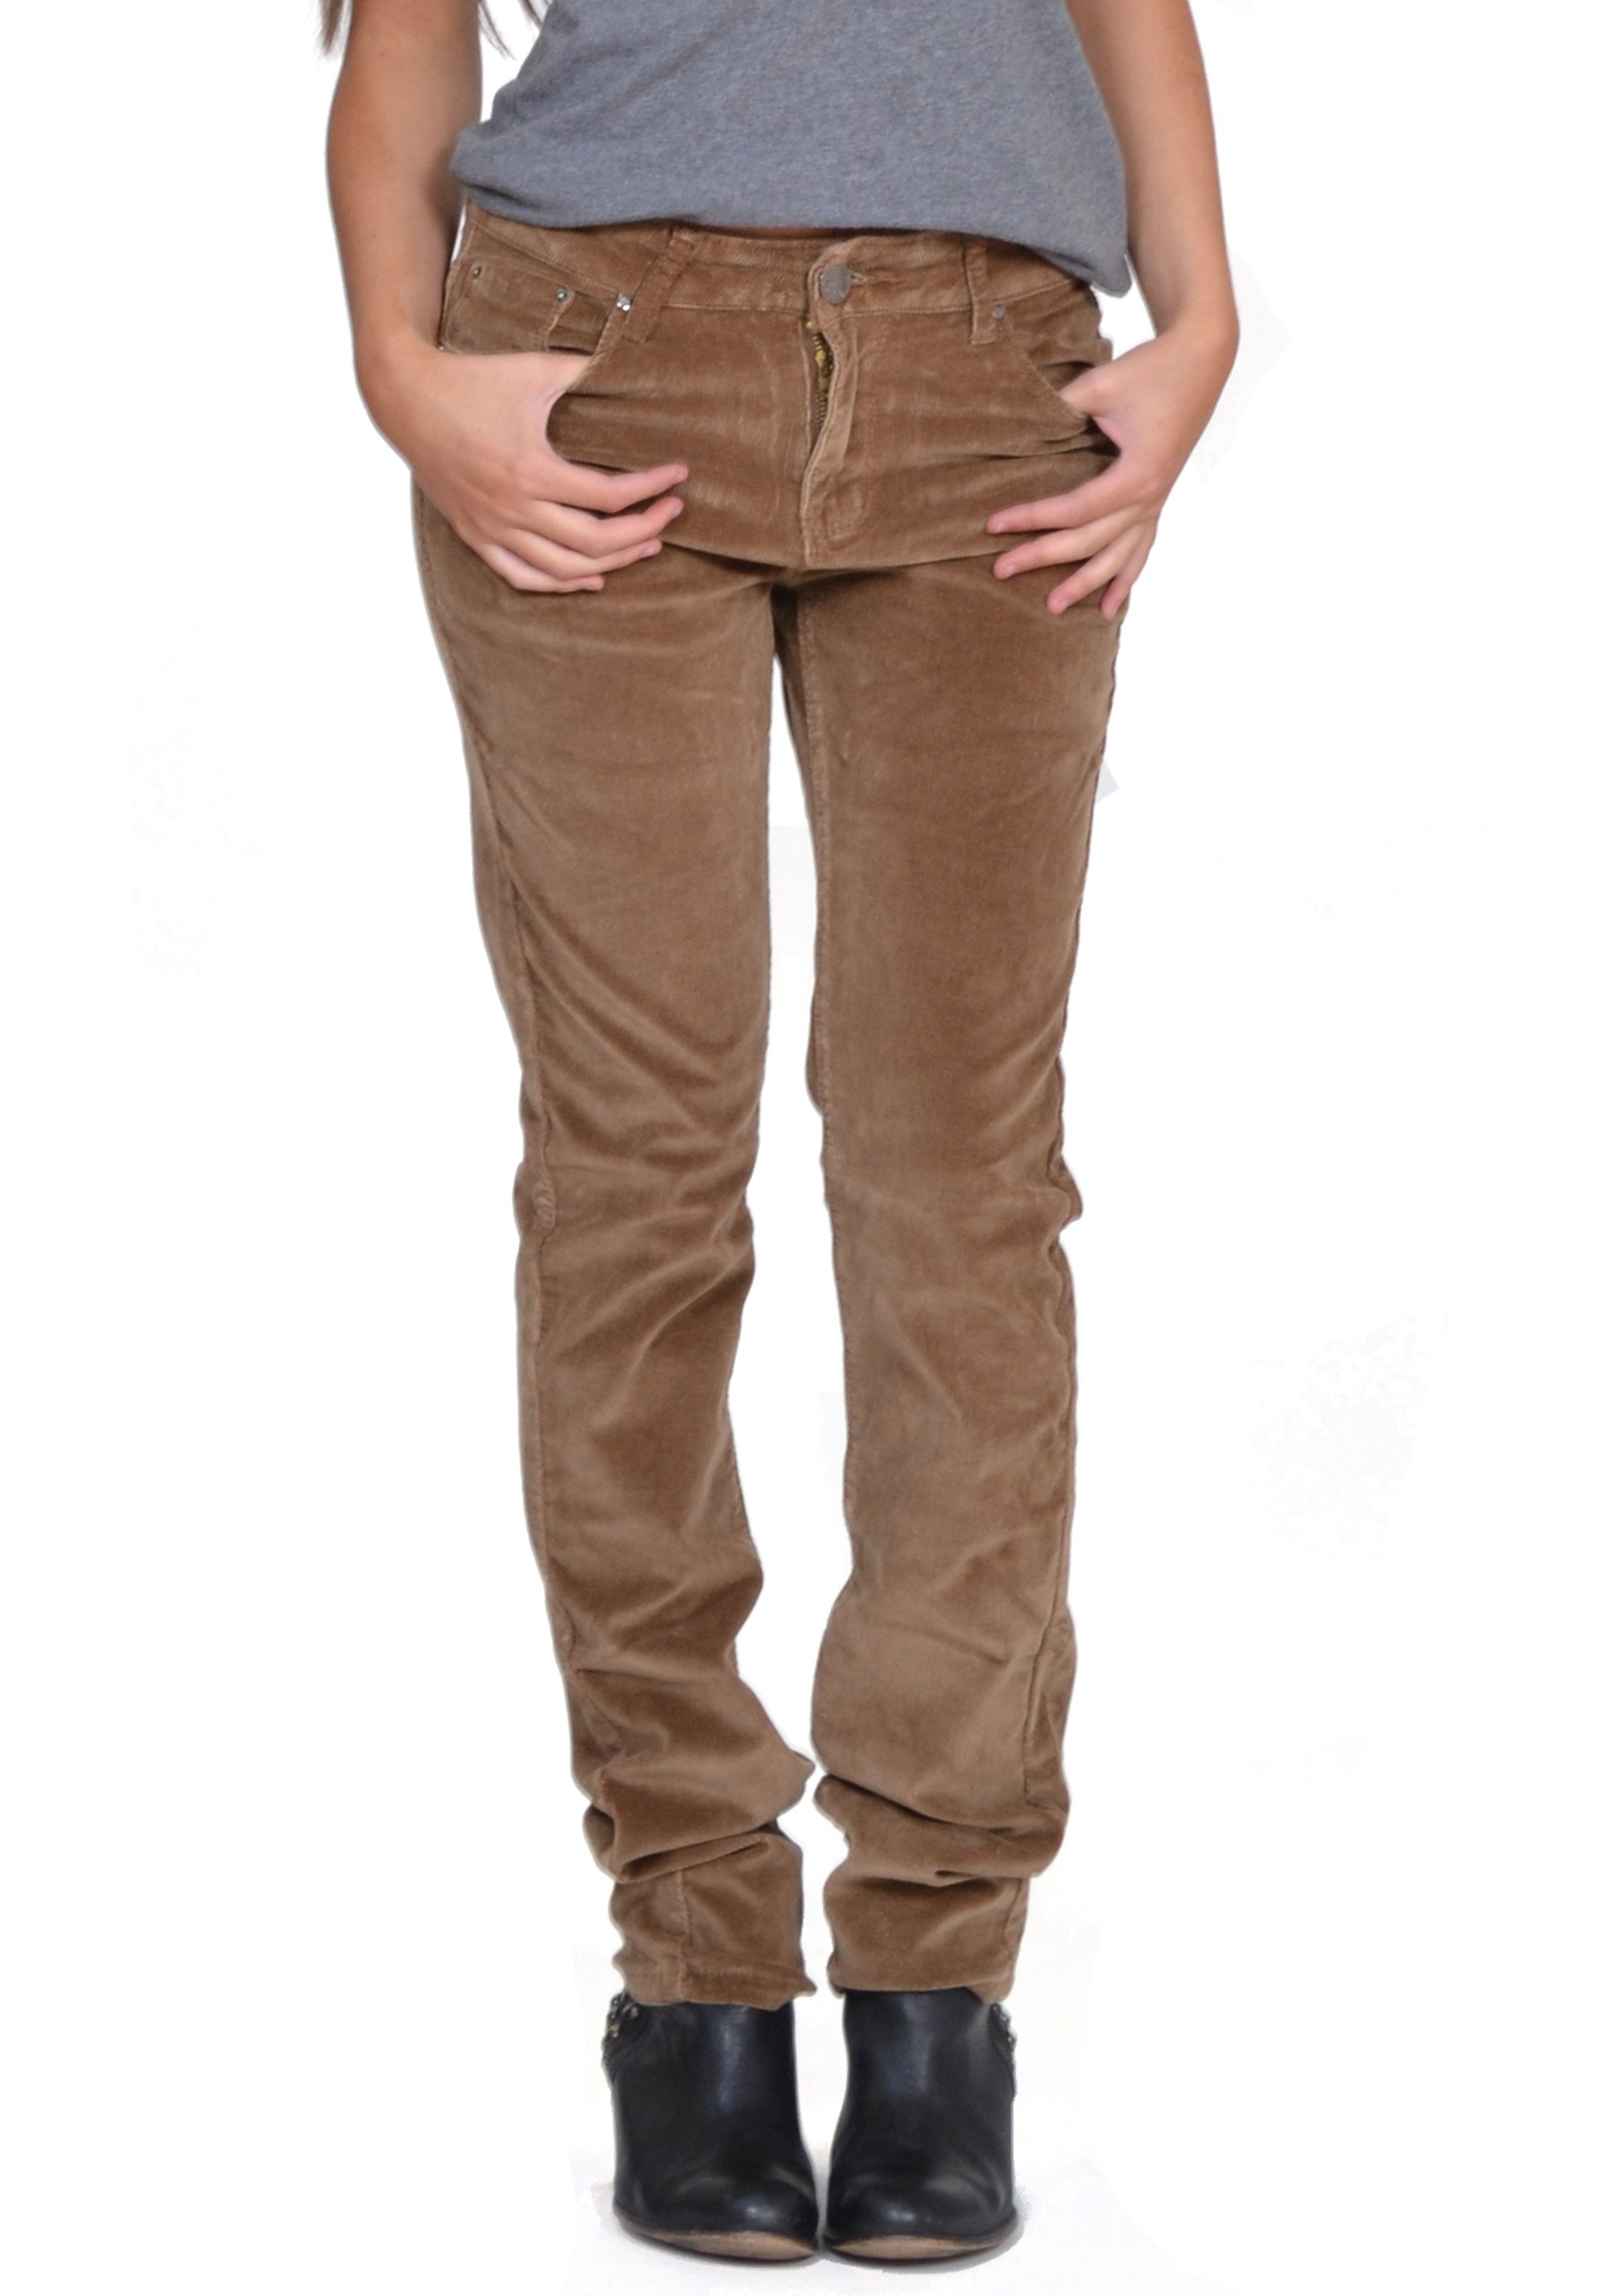 Find great deals on eBay for womens brown skinny jeans. Shop with confidence.